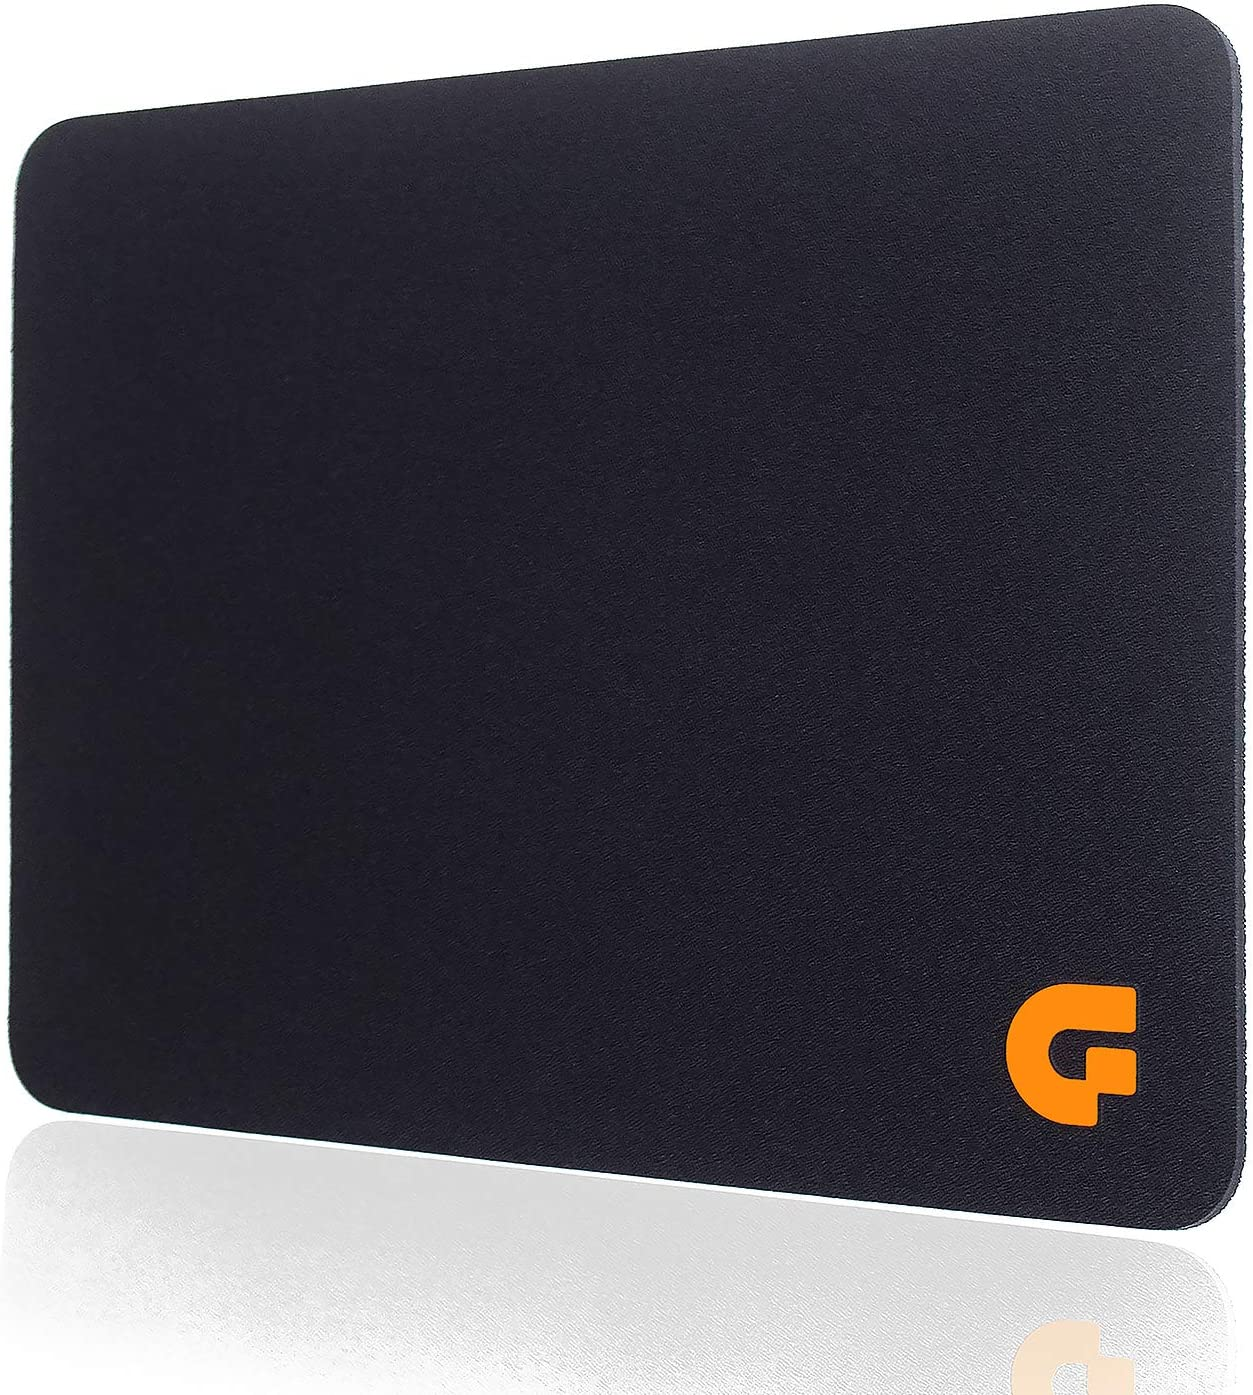 Guning Mouse Pads for Computers Black Smooth Waterproof Cloth Surface for Office and Gaming Portable Mousepad for Laptop Mac PC Accurate Smooth Moving